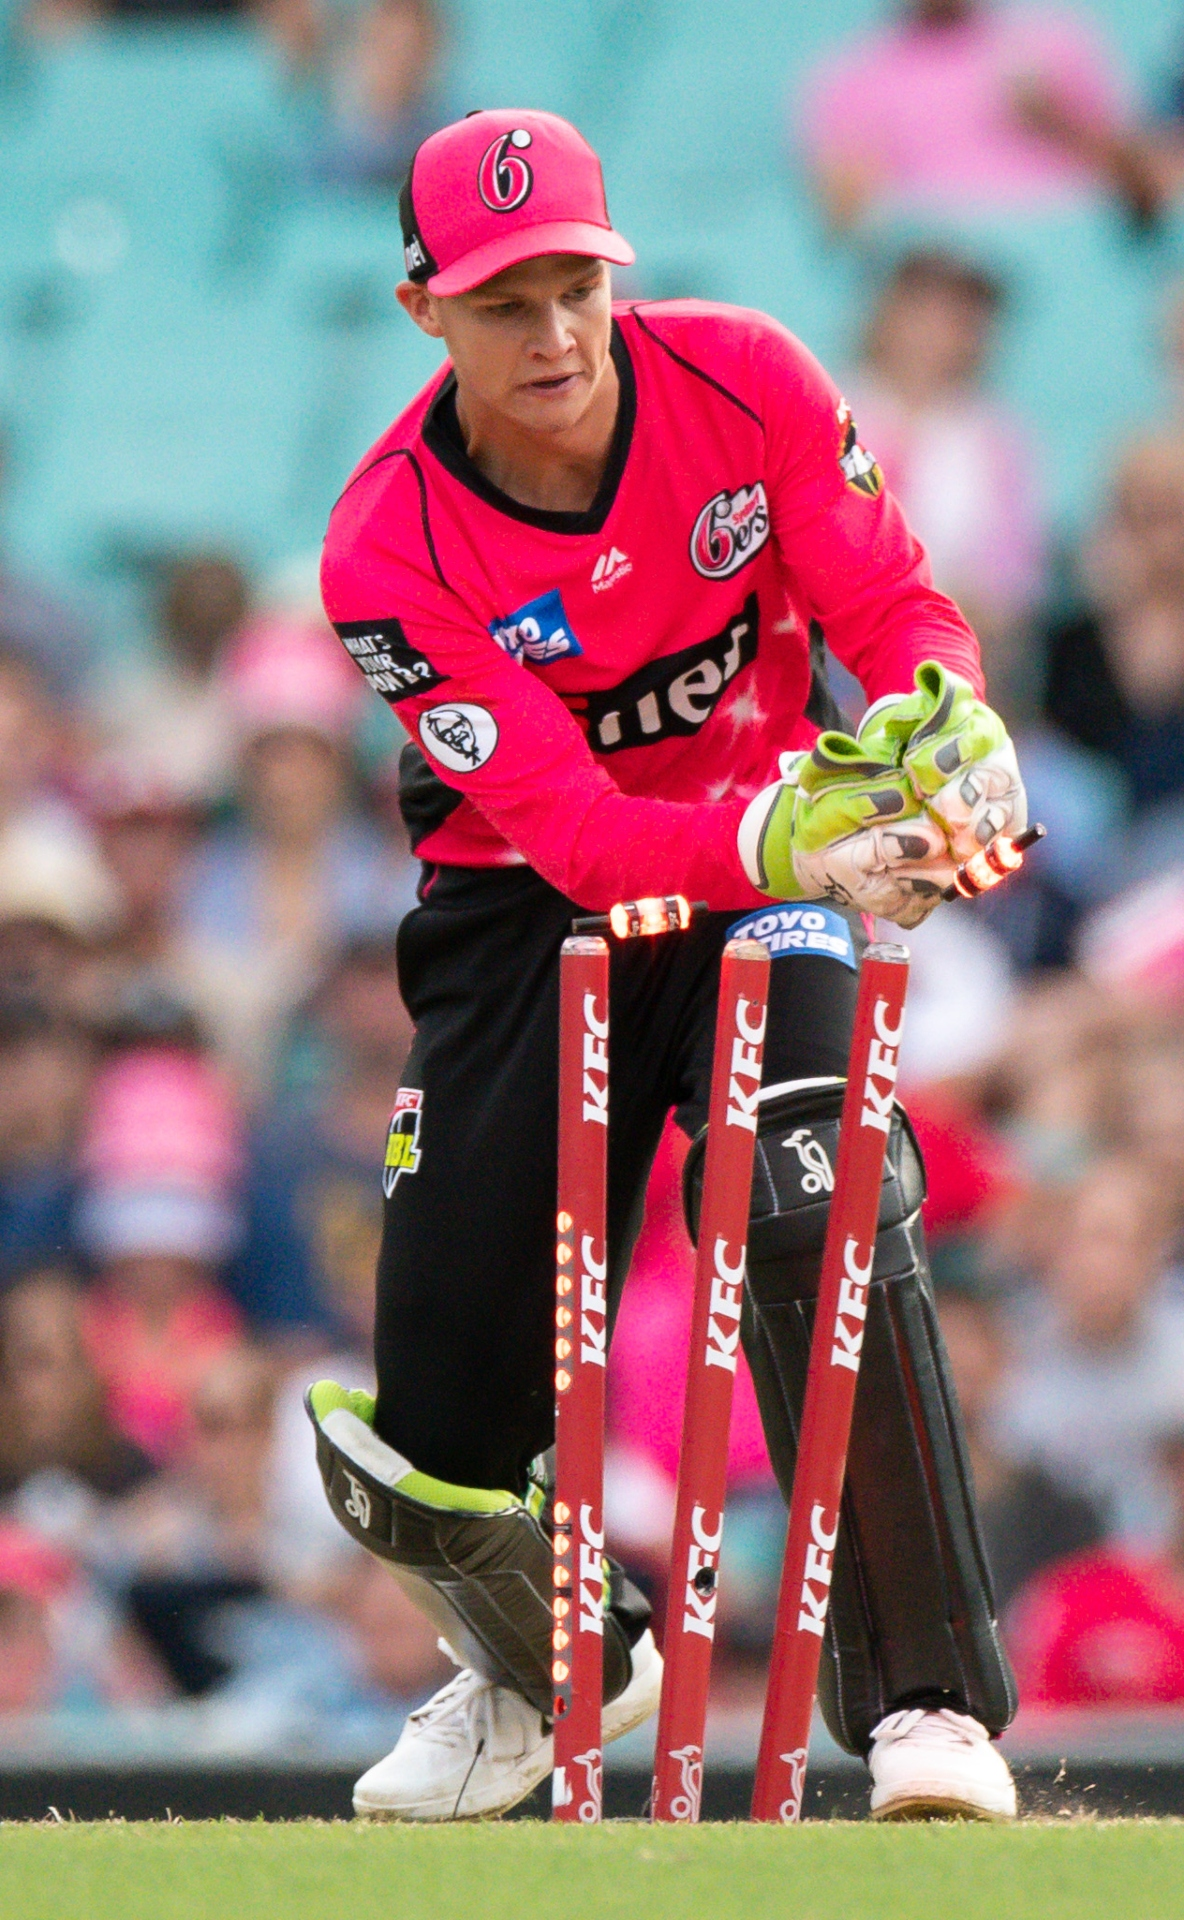 Sydney Sydney Sixers Josh Philippe runs out Hilton Cartwright (Perth Scorchers) in the BBL 08 at The Sydney Cricket Ground, December 22,2018. (Photo by Speed Media/Icon Sportswire via Getty ImagesPerth Sorchers